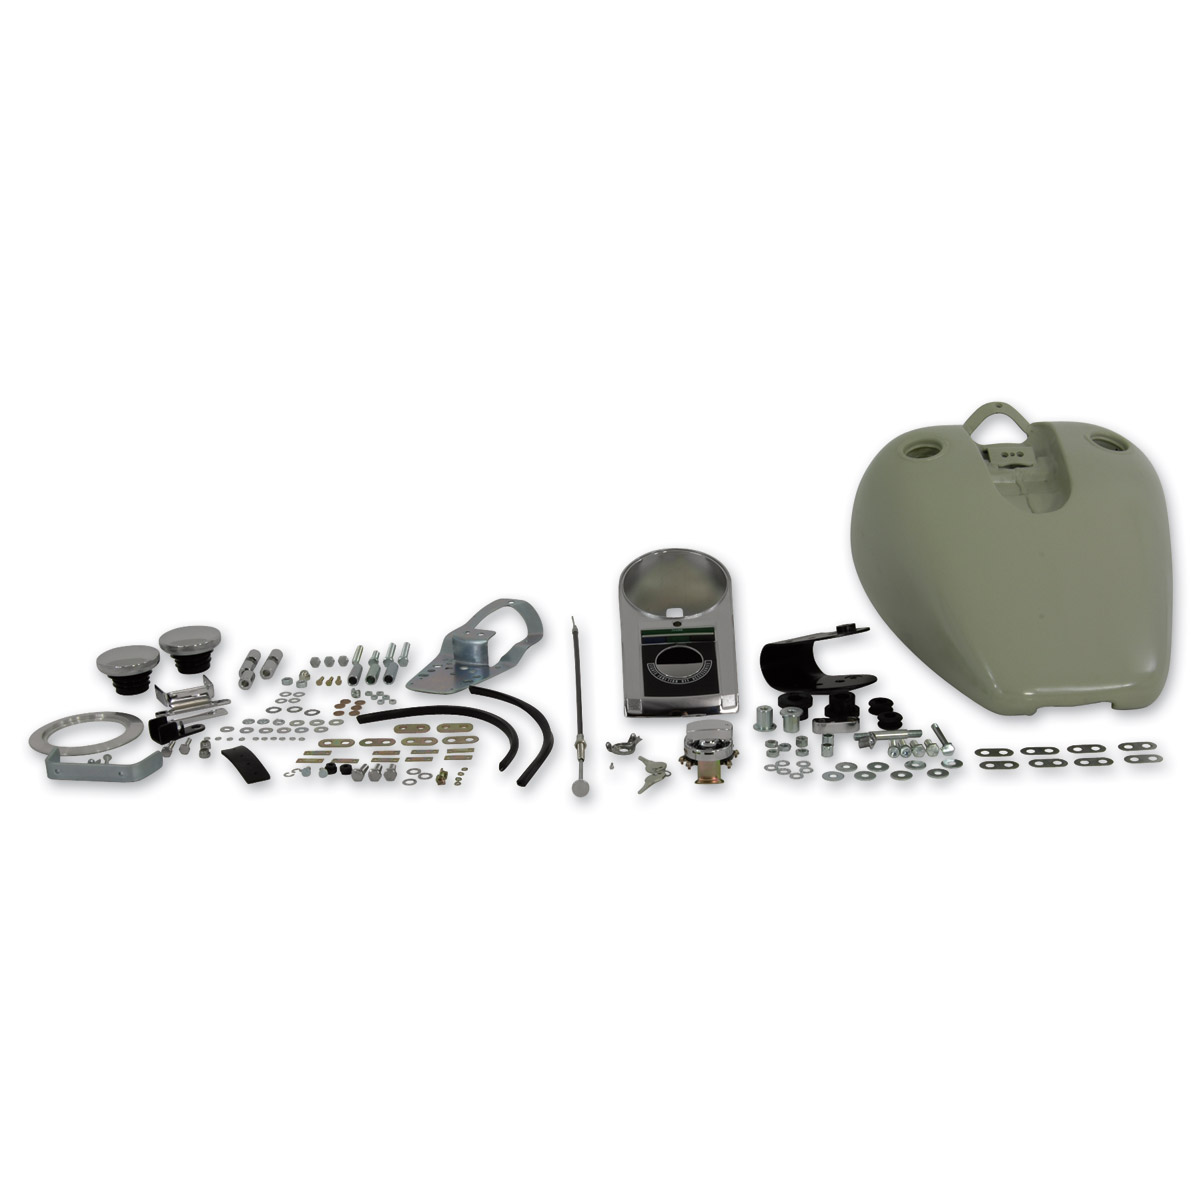 V-Twin Manufacturing E-Z Bob Tank Kits for Sportster - 38-0191